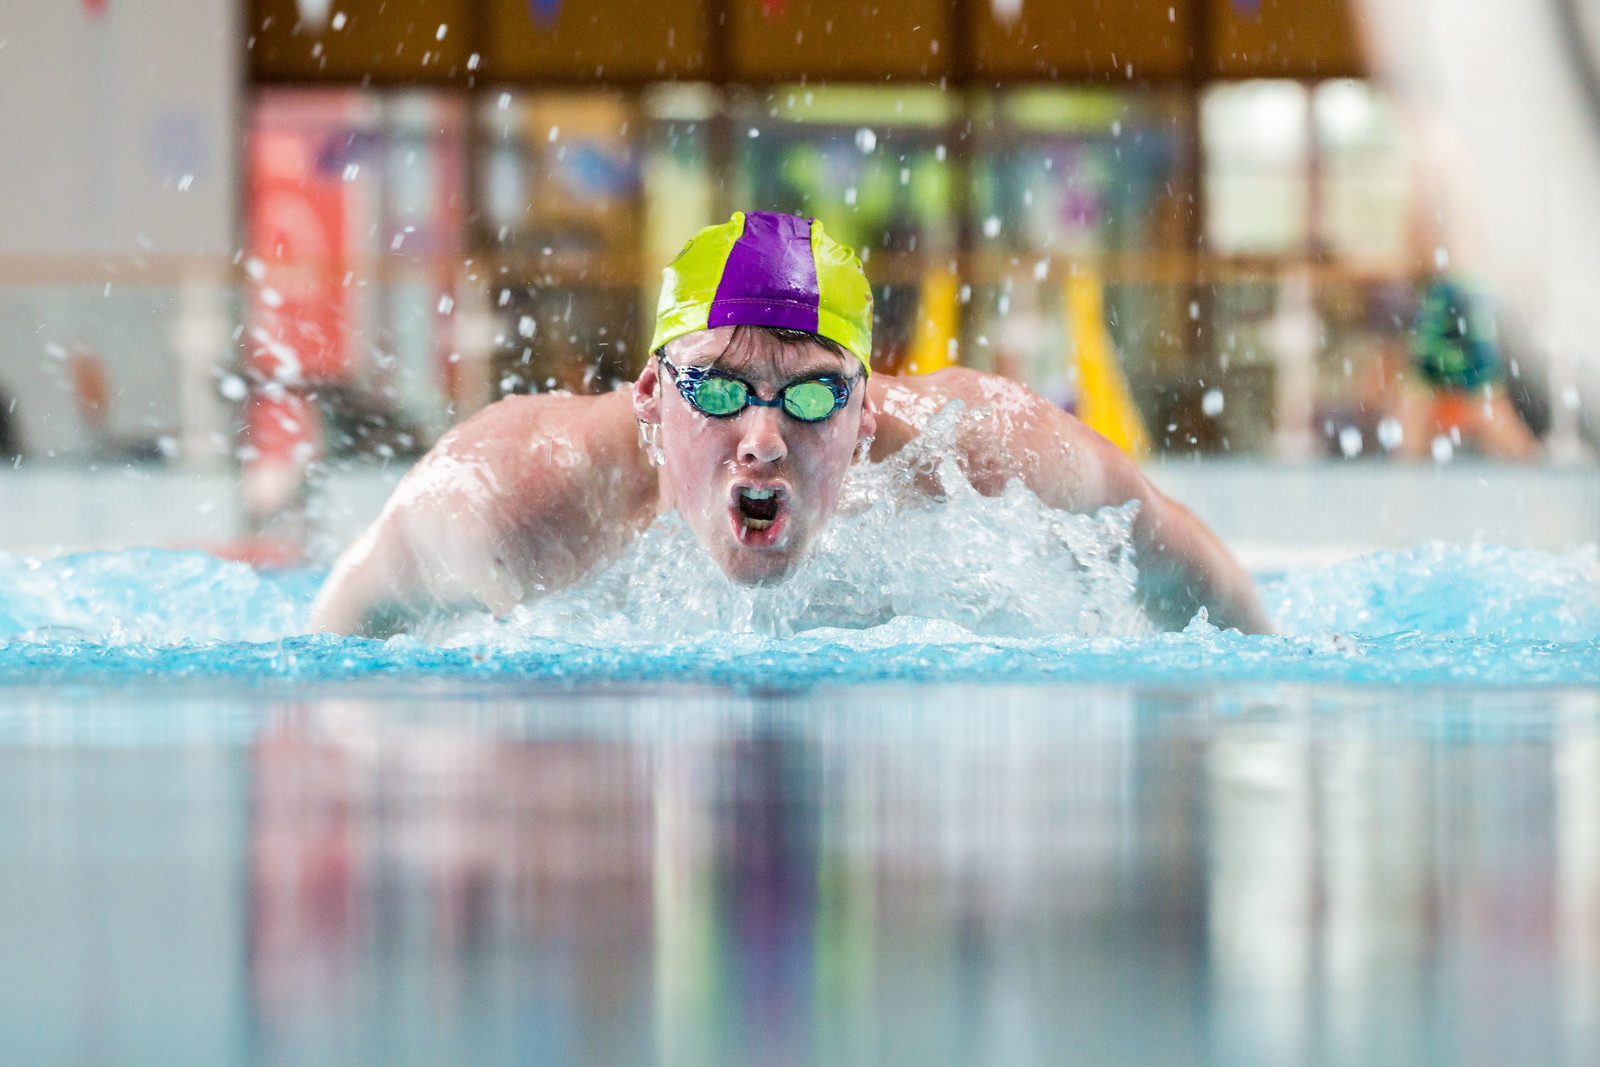 Swim safety smarts aura leisure centres - Drogheda leisure centre swimming pool ...